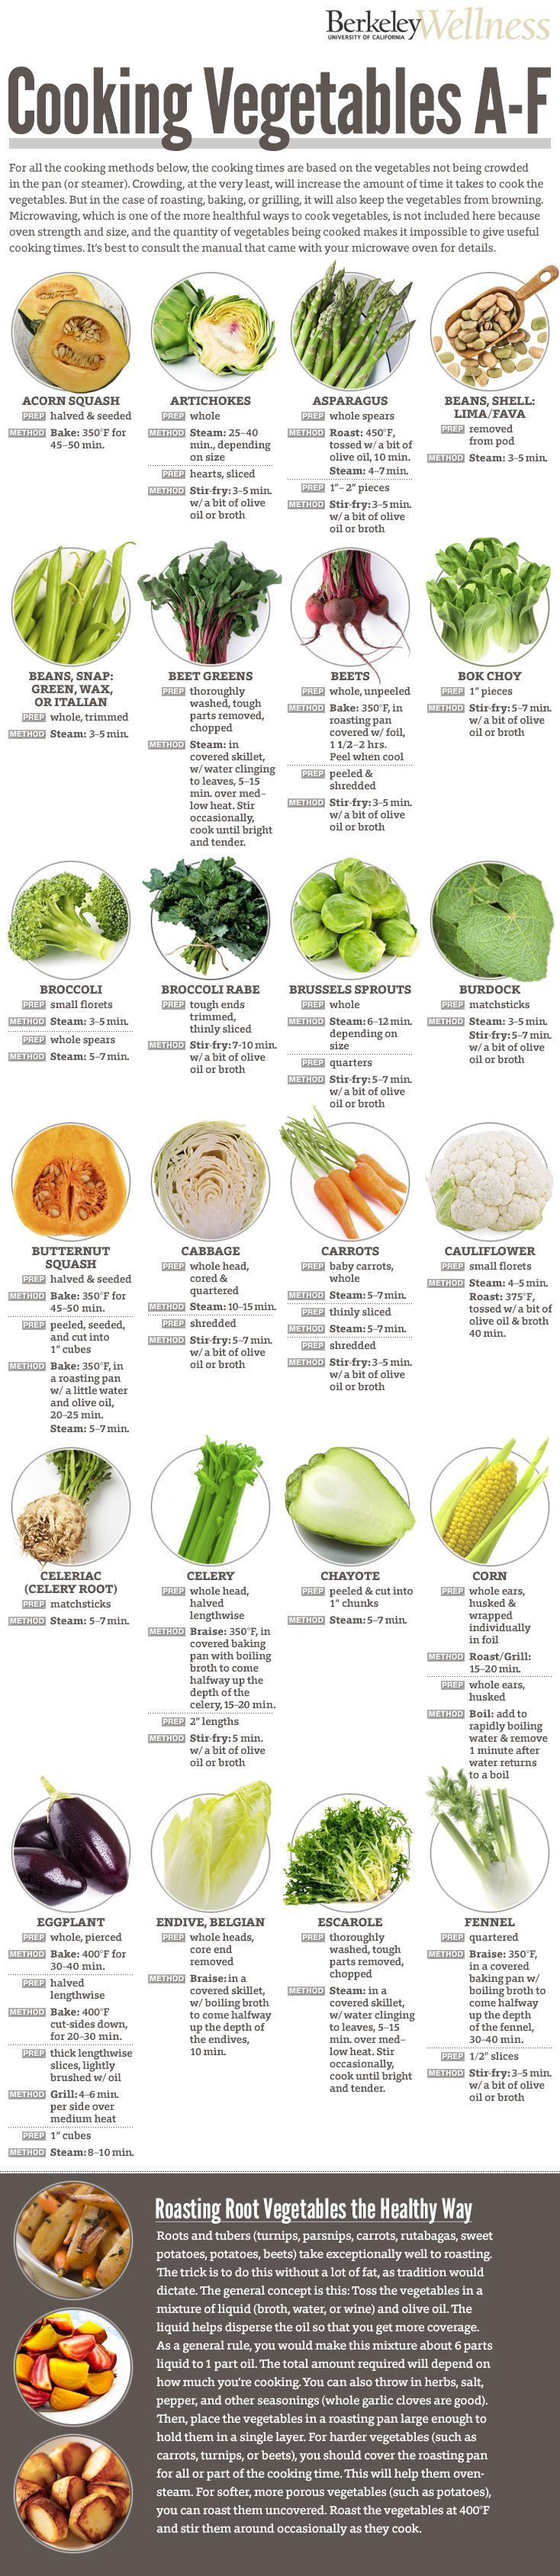 PART 1: How to Cook Vegetables the healthy way from Acorn squash to Fennel - by berkelywellness